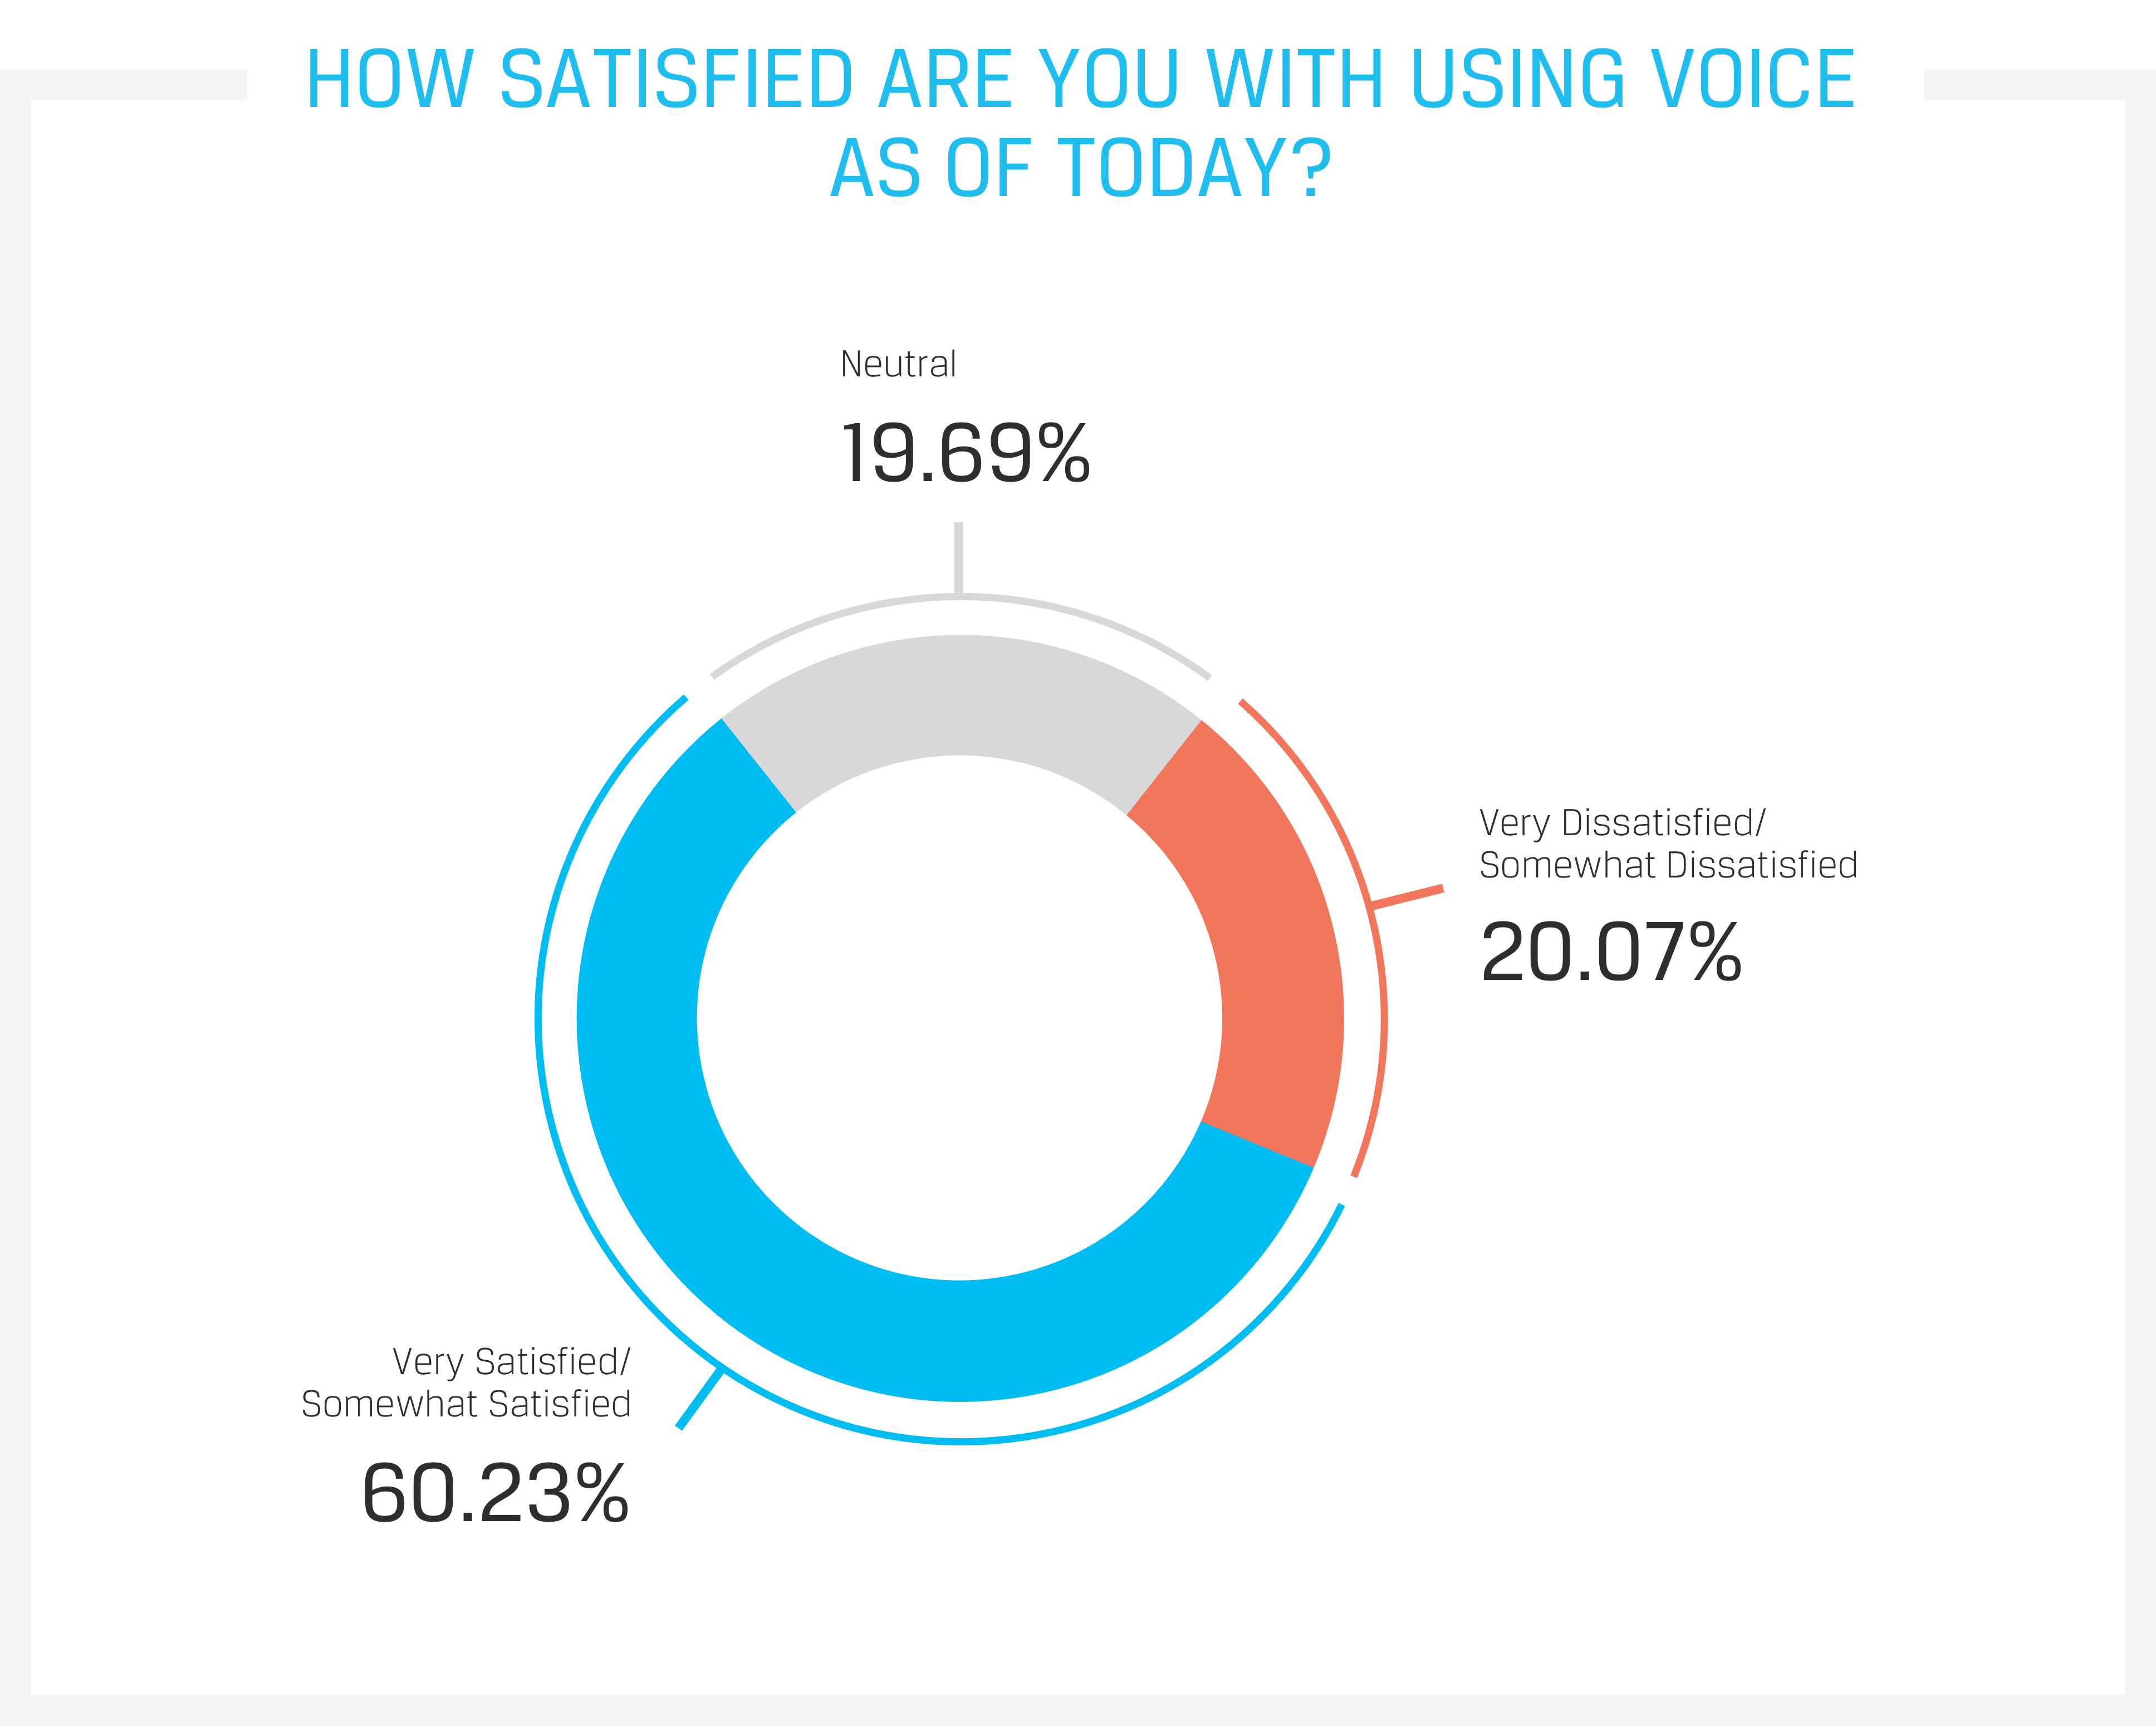 How satisfied are you with using voice as of today?